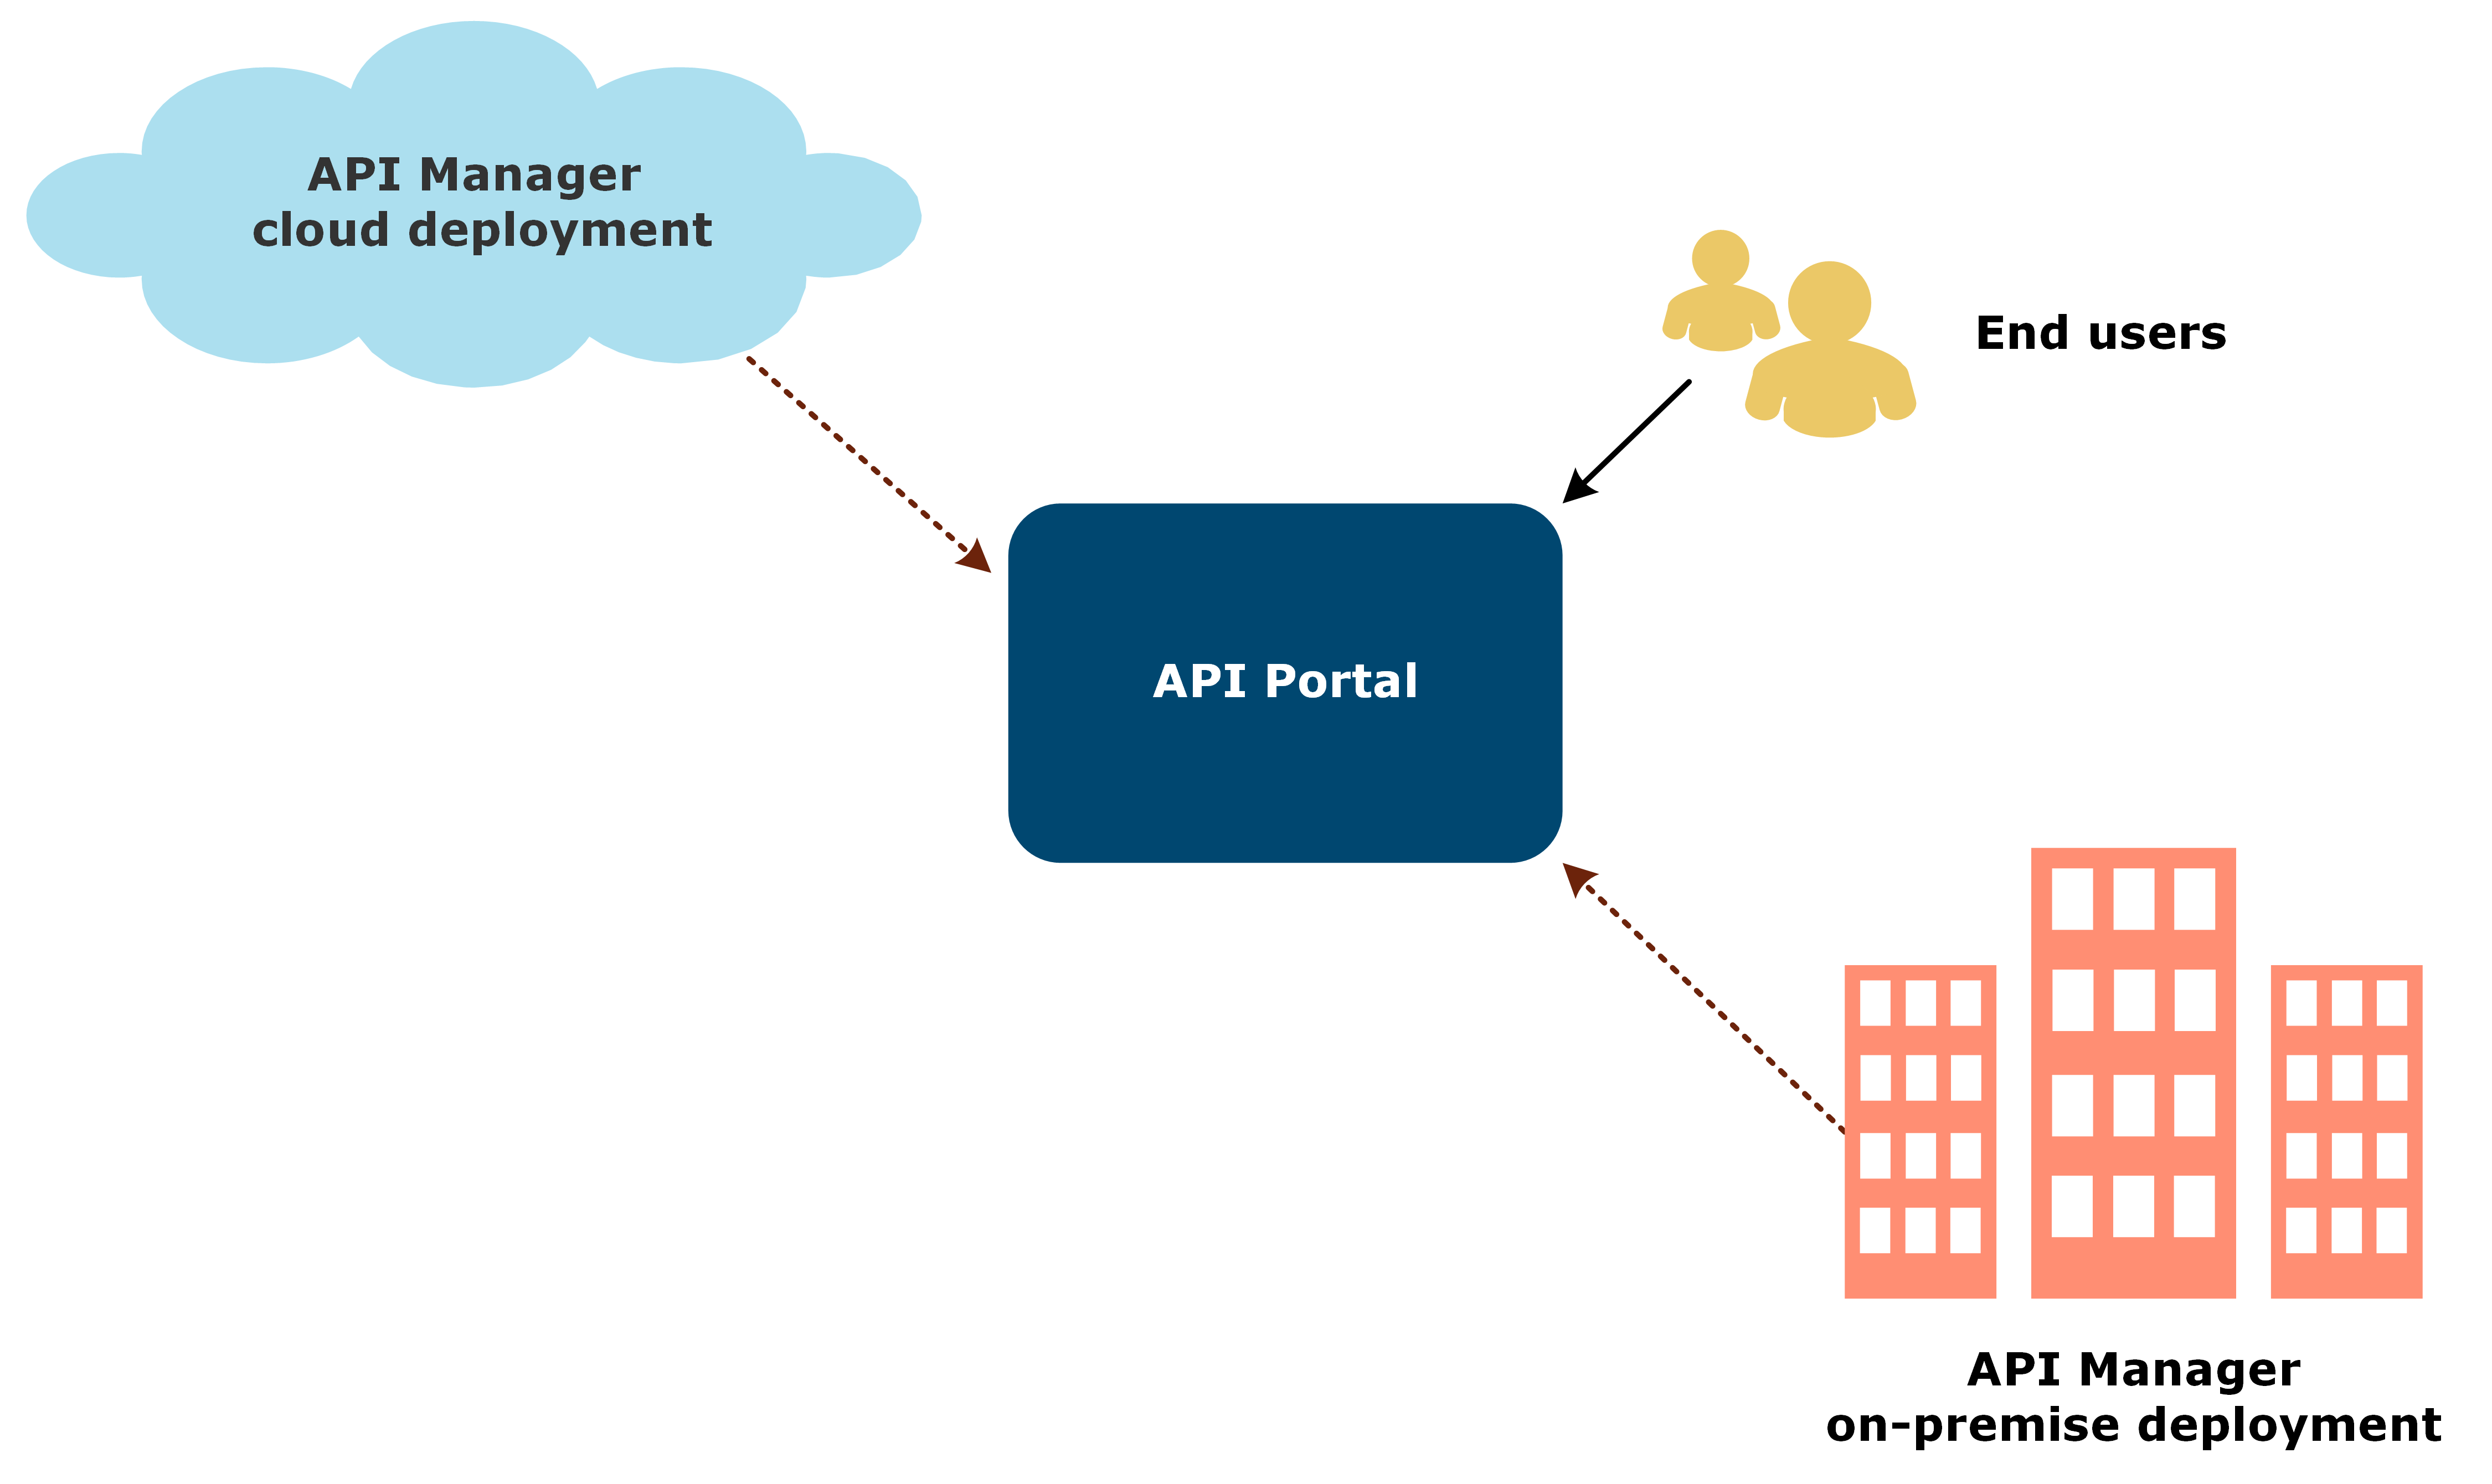 Illustration showing APIPortal exposing APIs from both cloud and on-premise deployments.